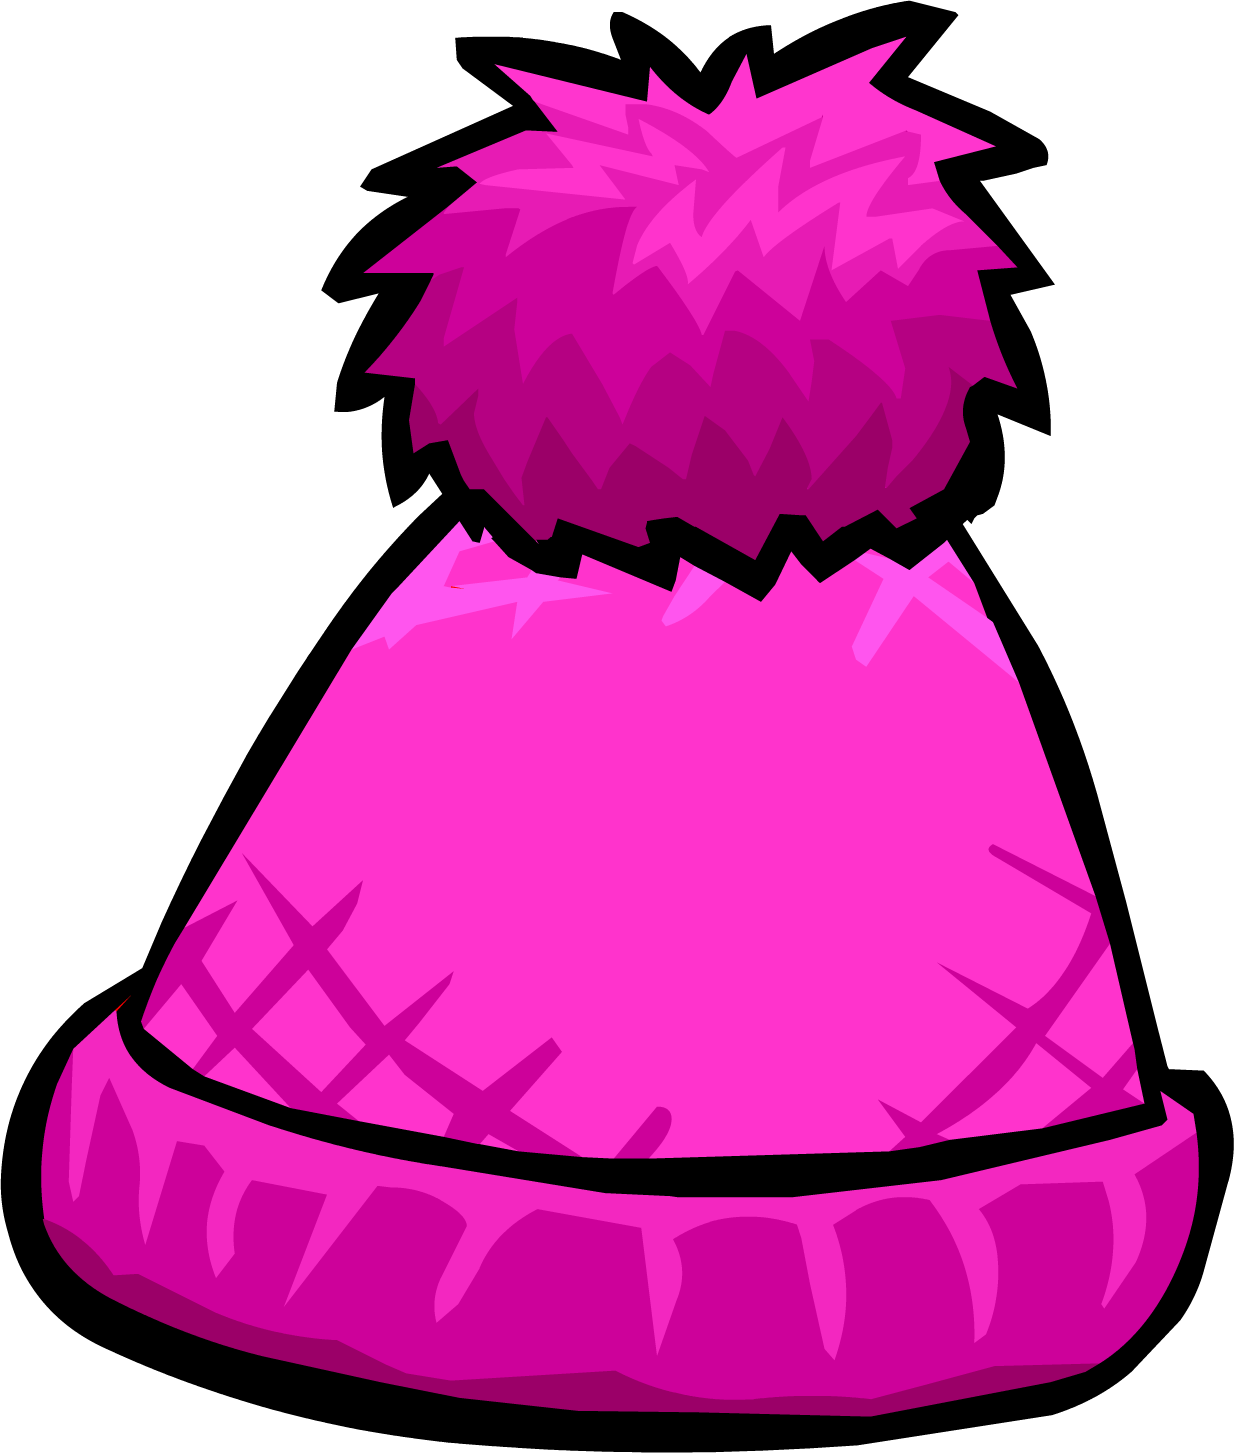 Flower hat clipart jpg download 28+ Collection of Toque Hat Clipart | High quality, free cliparts ... jpg download